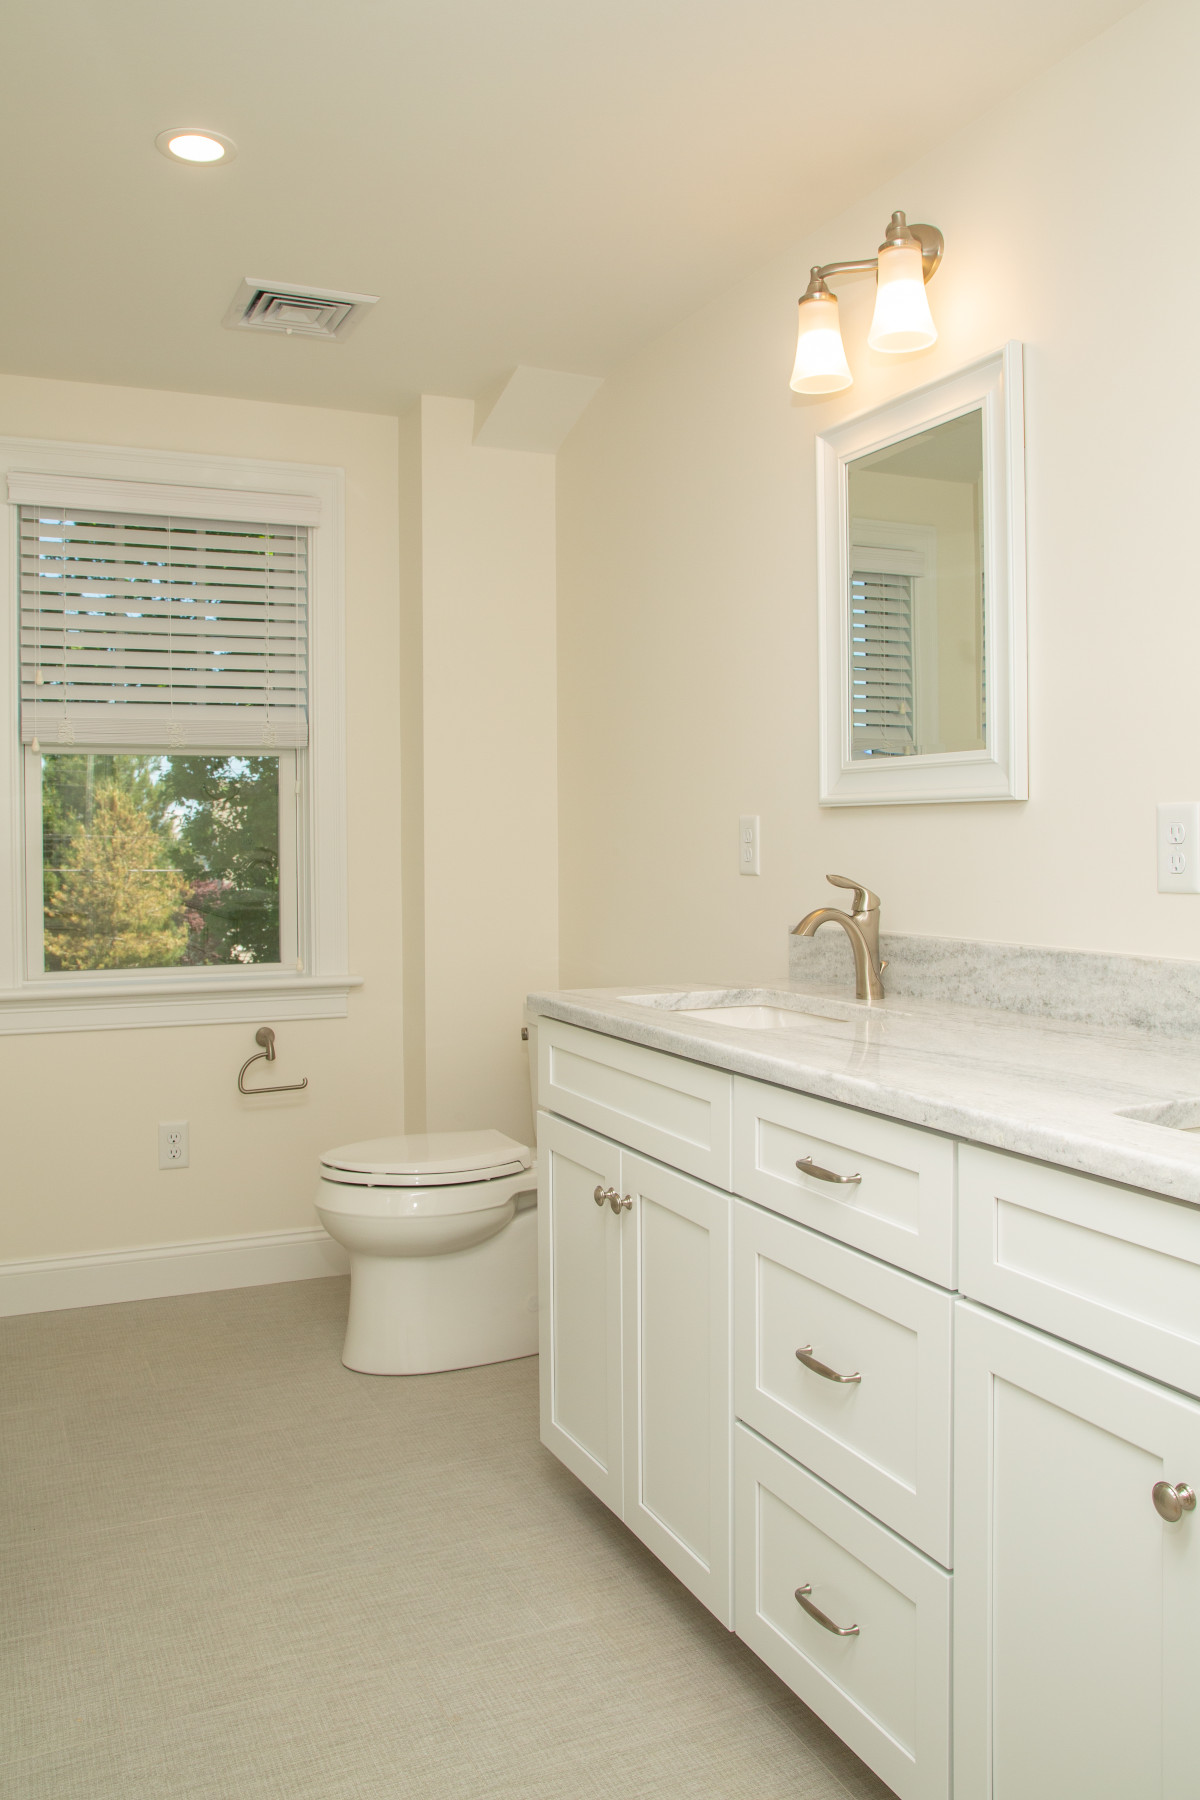 View of guest bathroom in new home